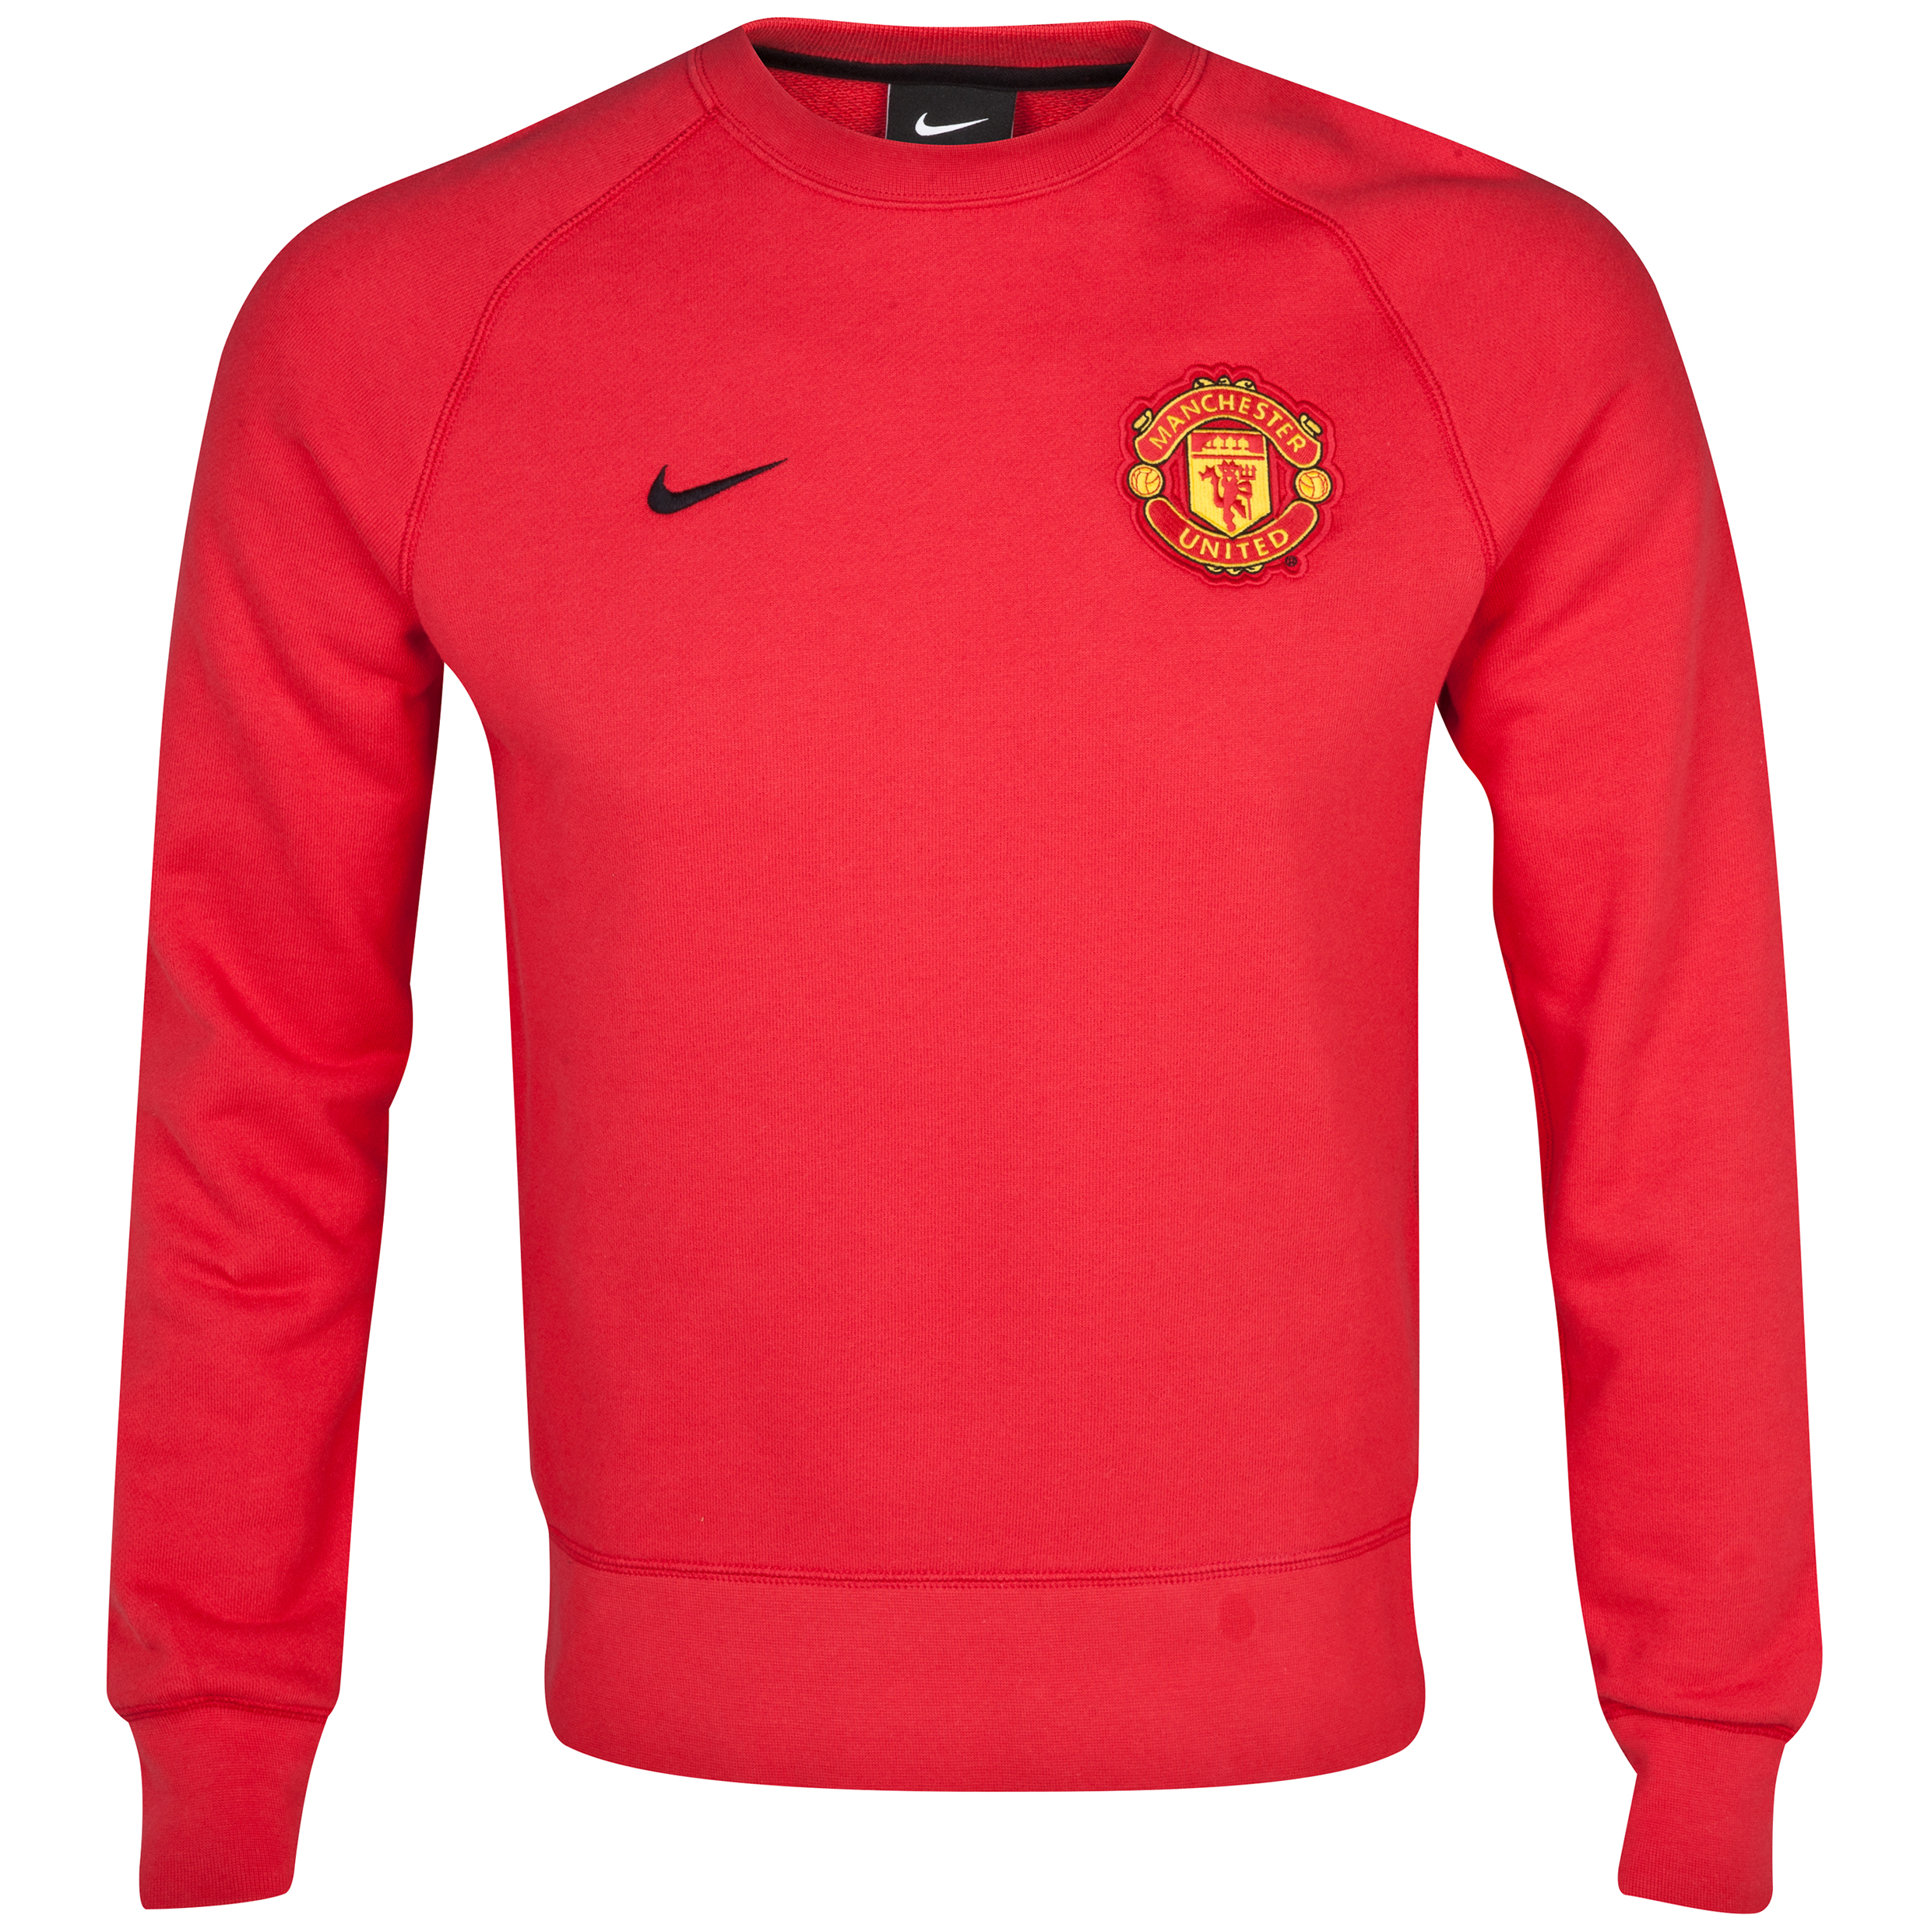 Manchester United Authentic AW77 Crew Sweatshirt - Diablo Red/Black Red